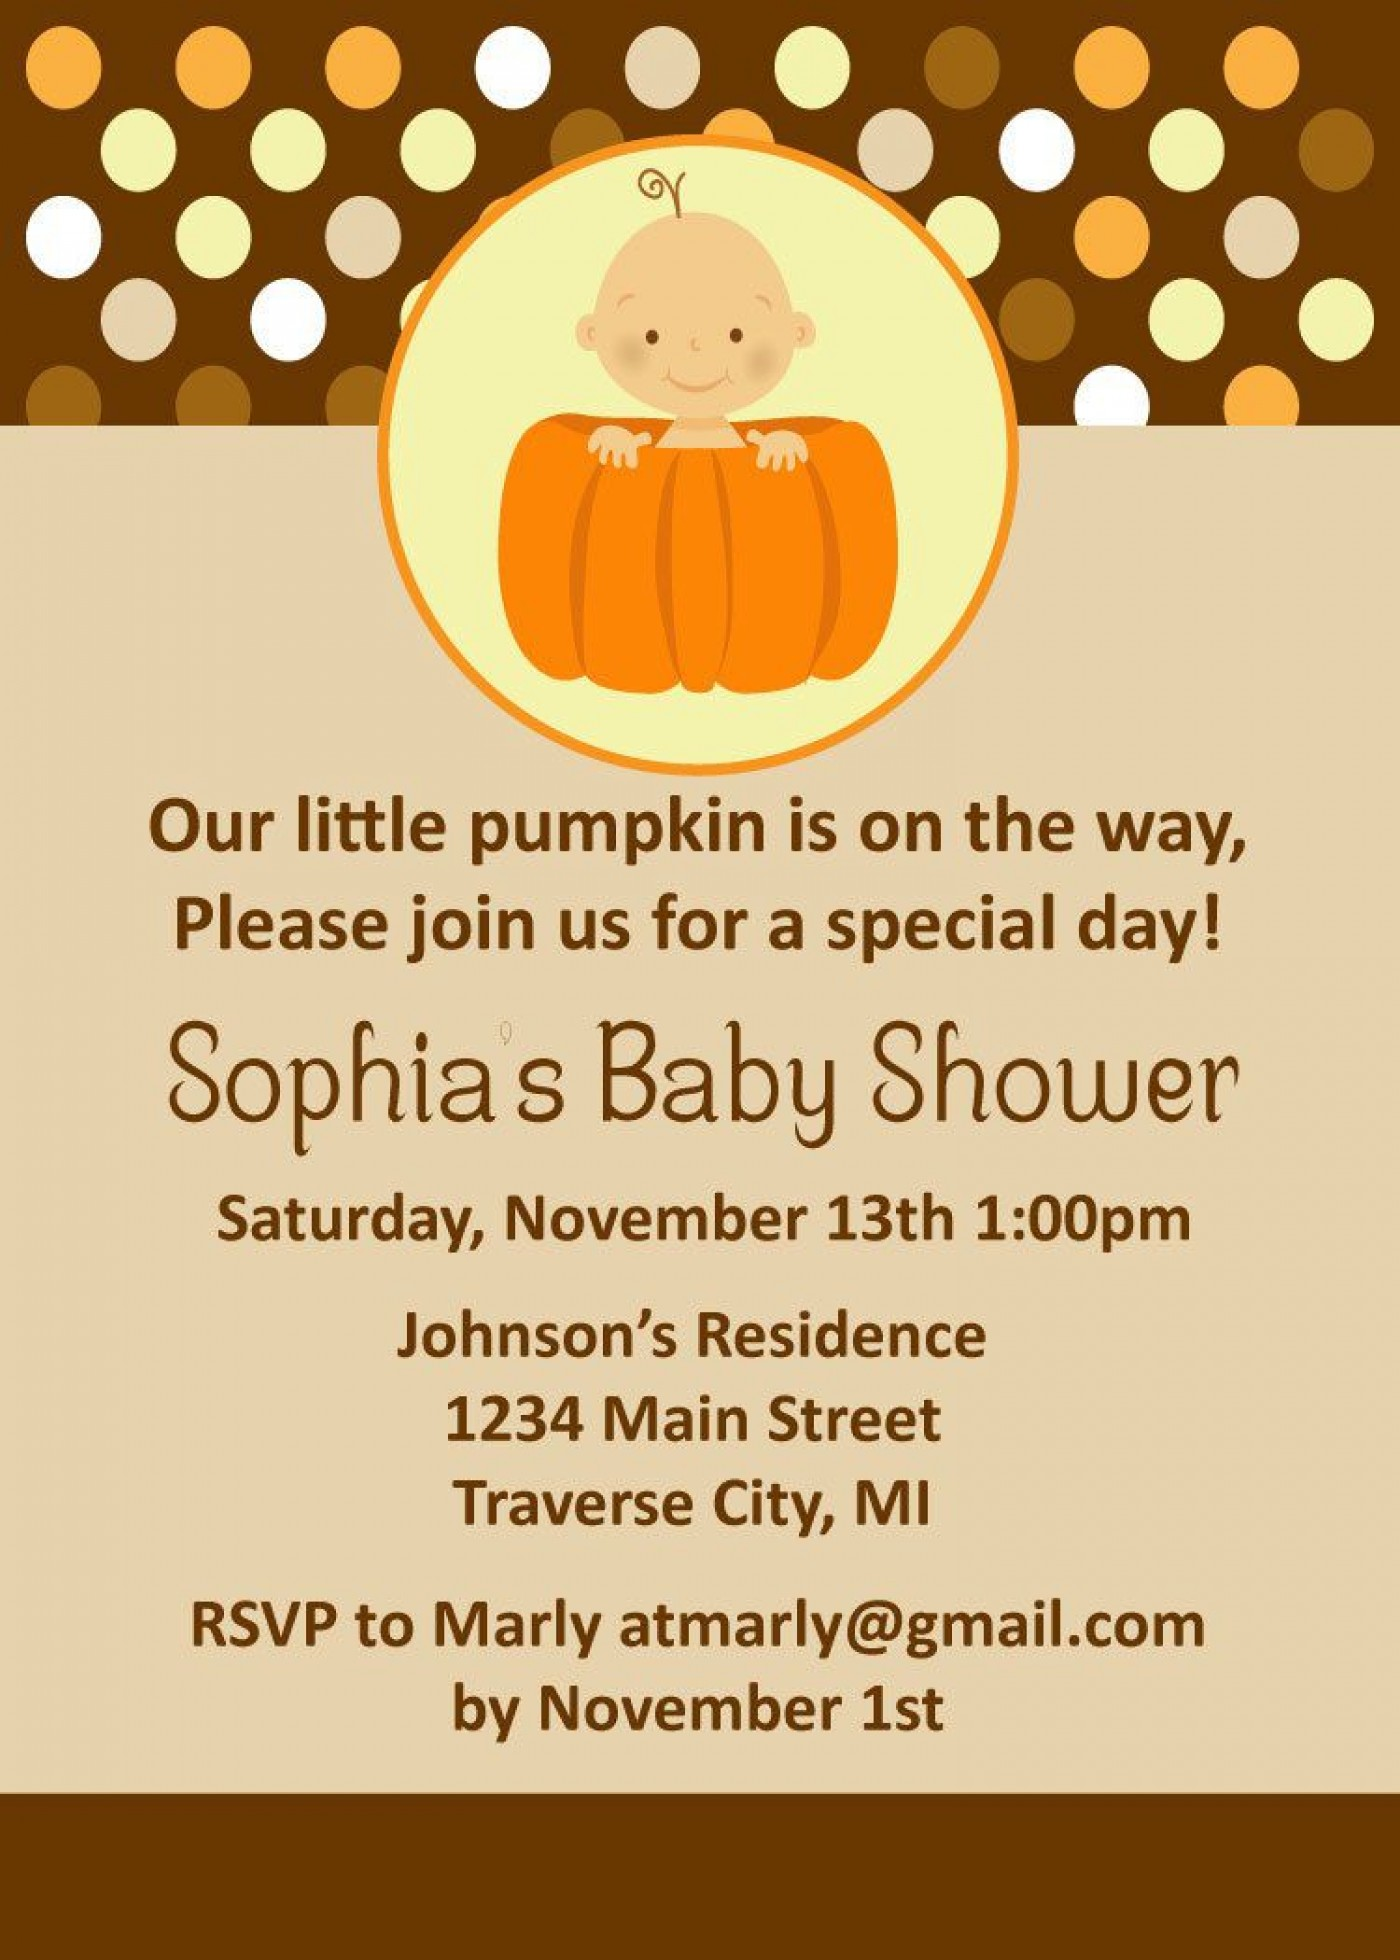 008 Striking Baby Shower Invitation Girl Pumpkin Image  Pink Little1400